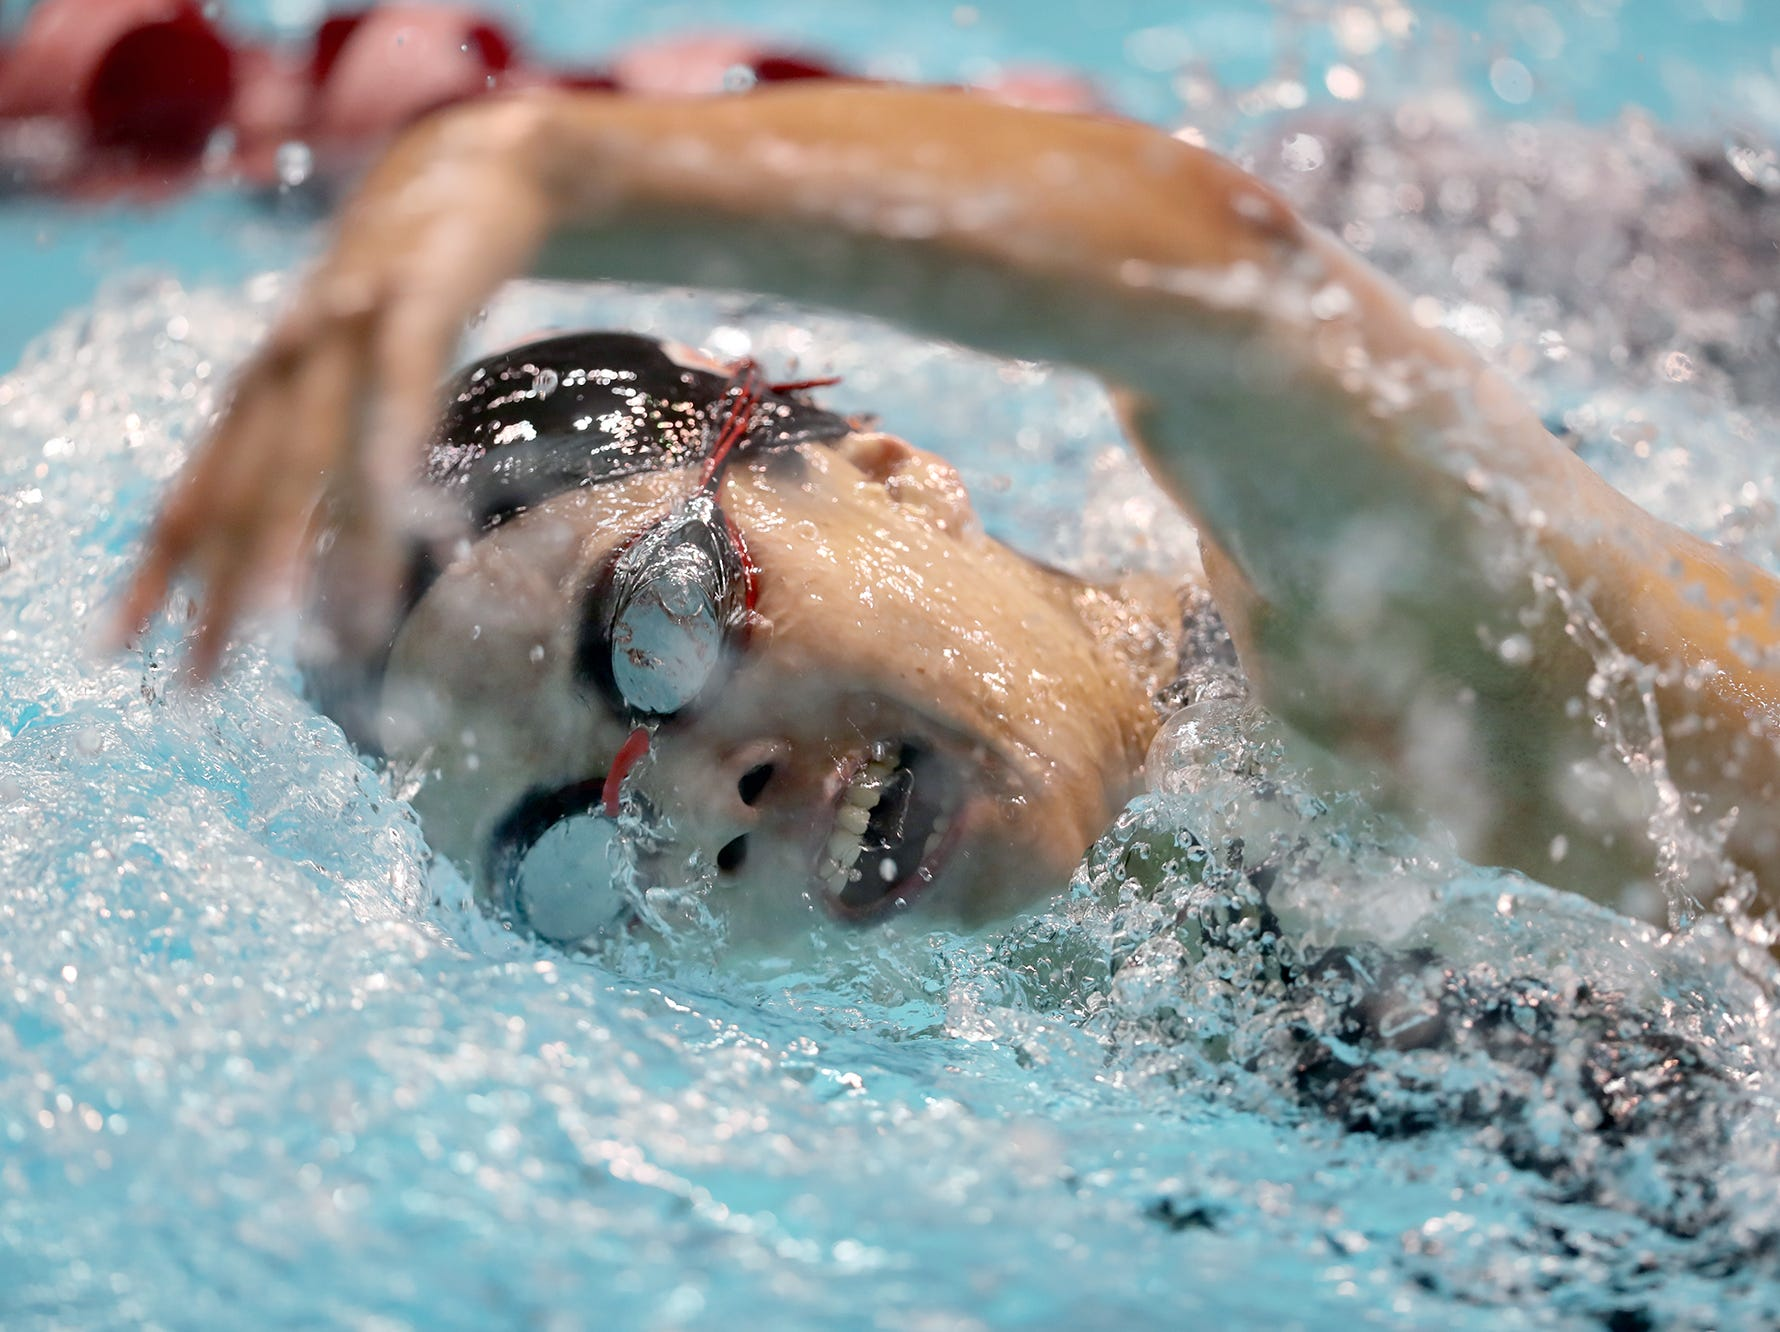 Central Kitsap swimmer Taylor Sims competes in the 3A girls 200 freestyle at the Washington State Swim & Diving Championships at the King County Aquatic Center on Saturday, November, 10, 2018.